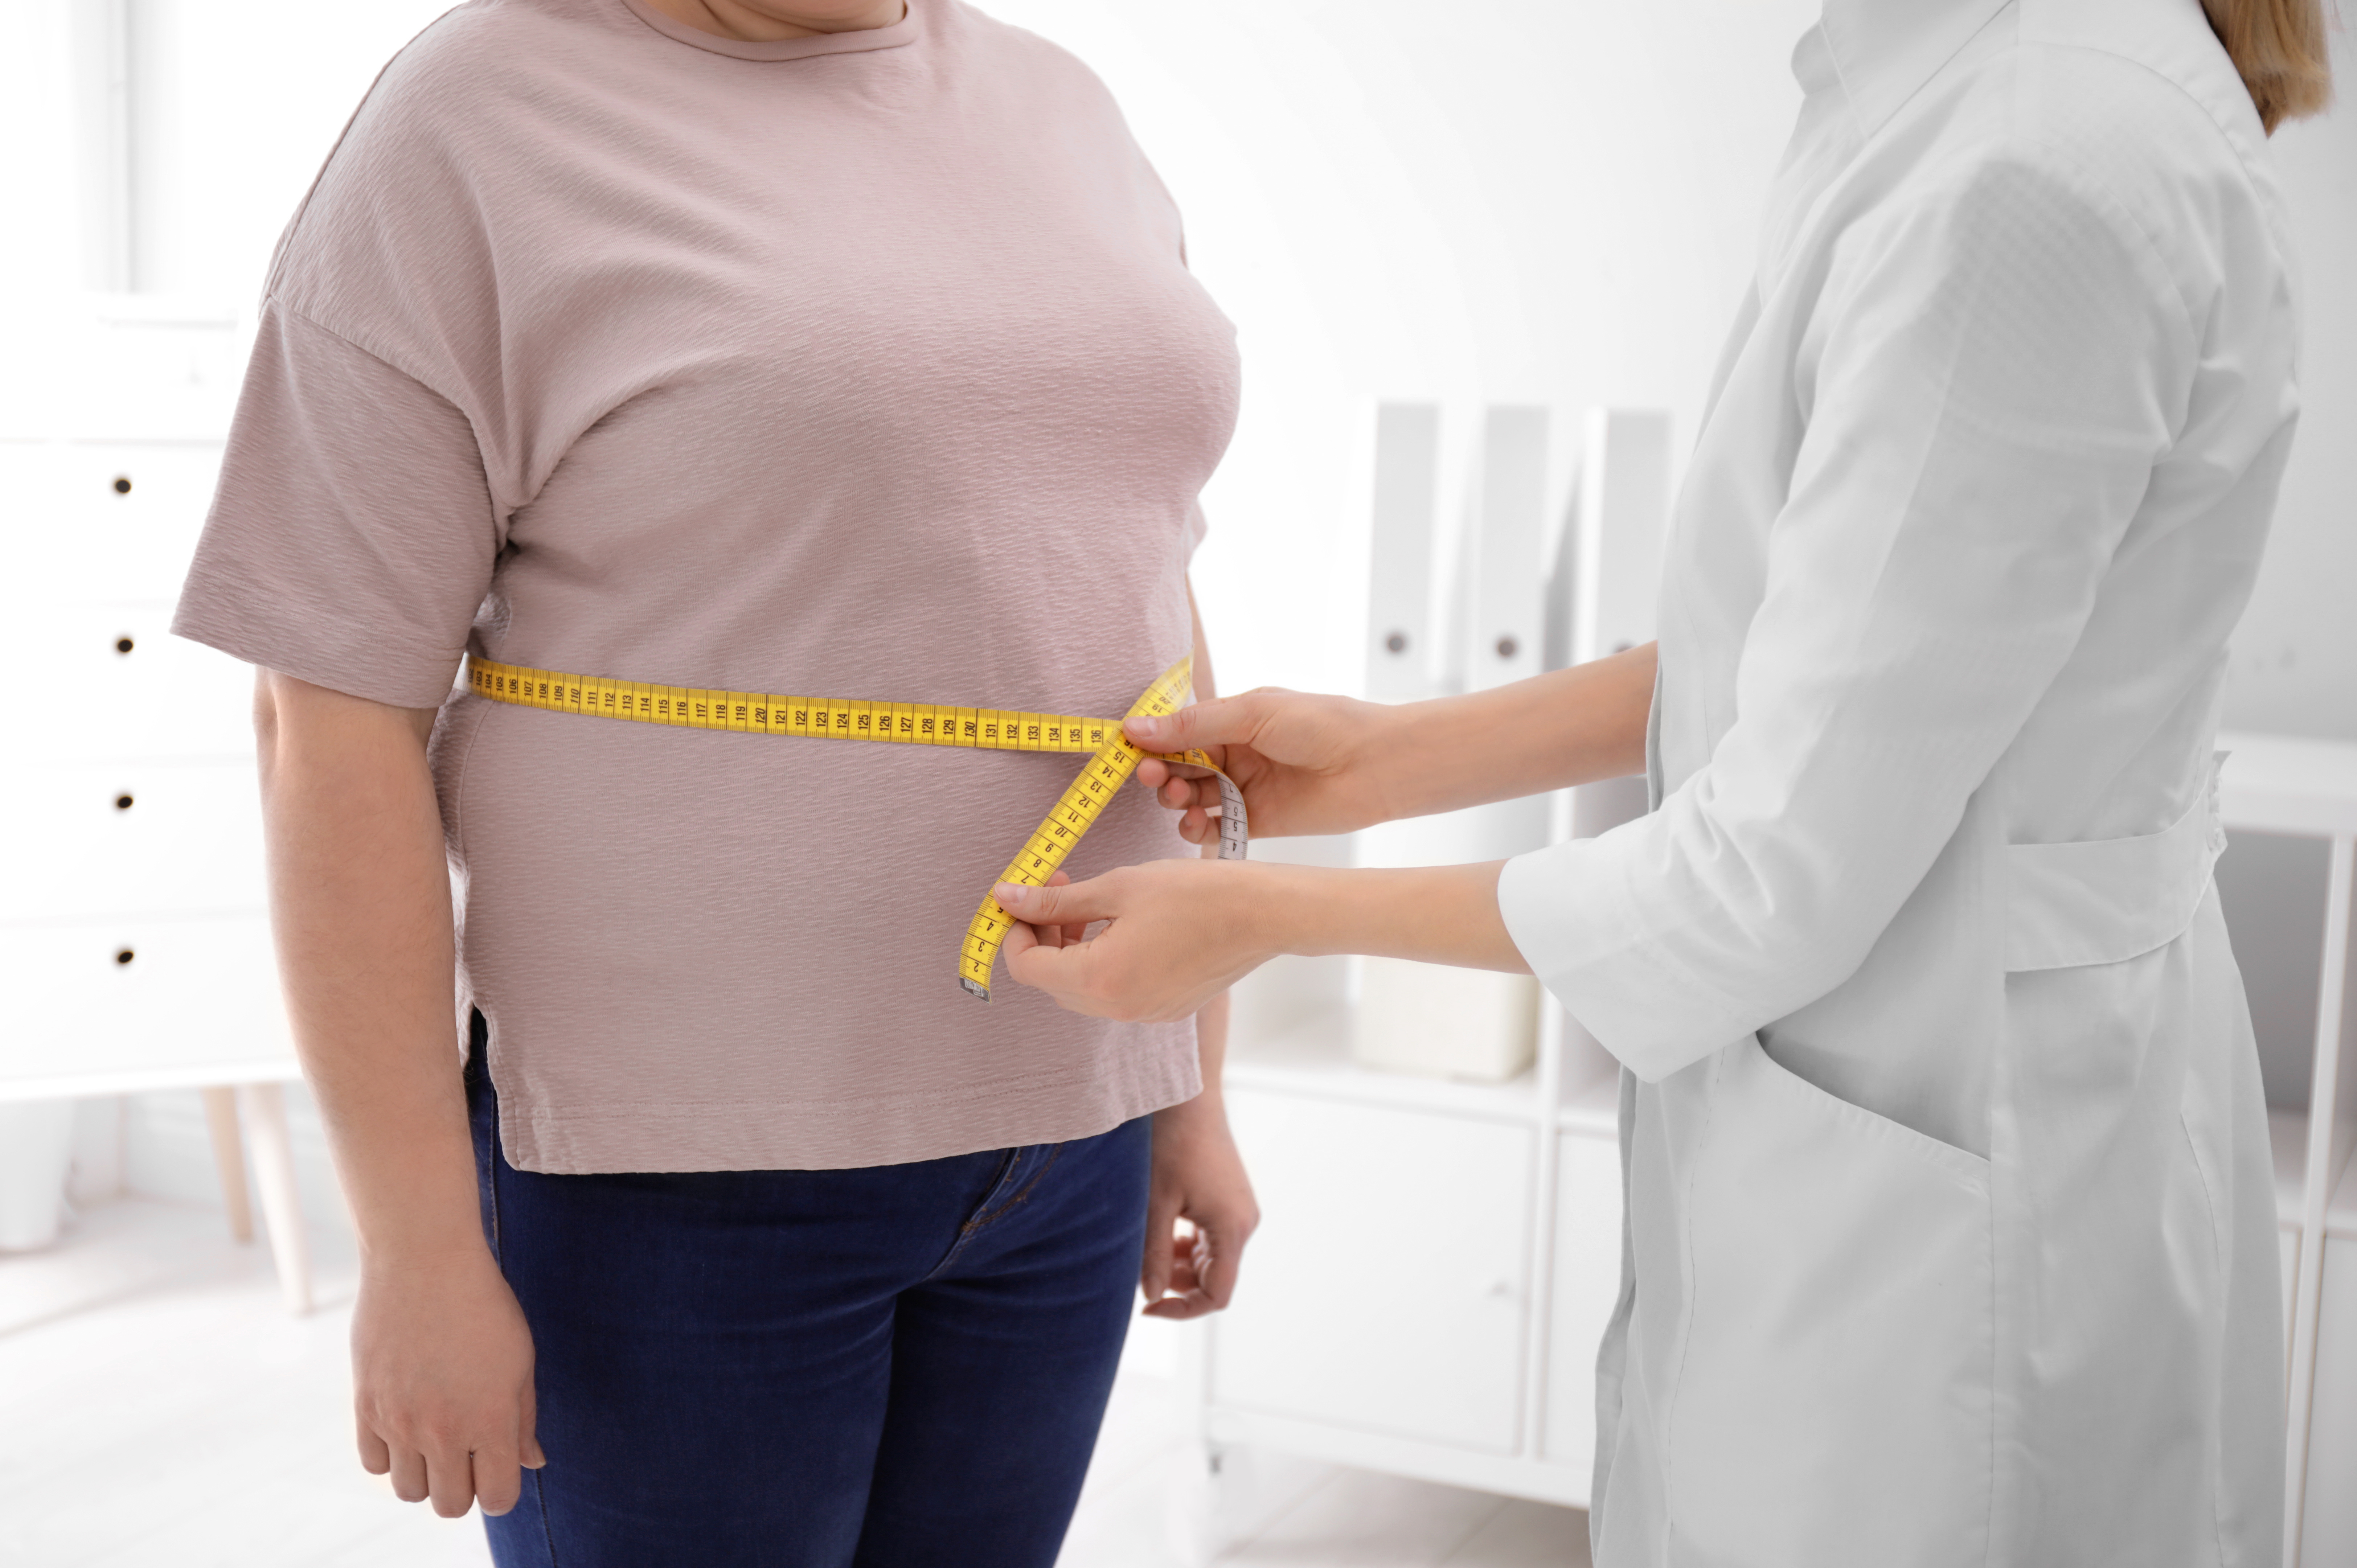 Research predicts that rising obesity and lack of exercise could usurp tobacco this decadeas the leading cause of cancer.